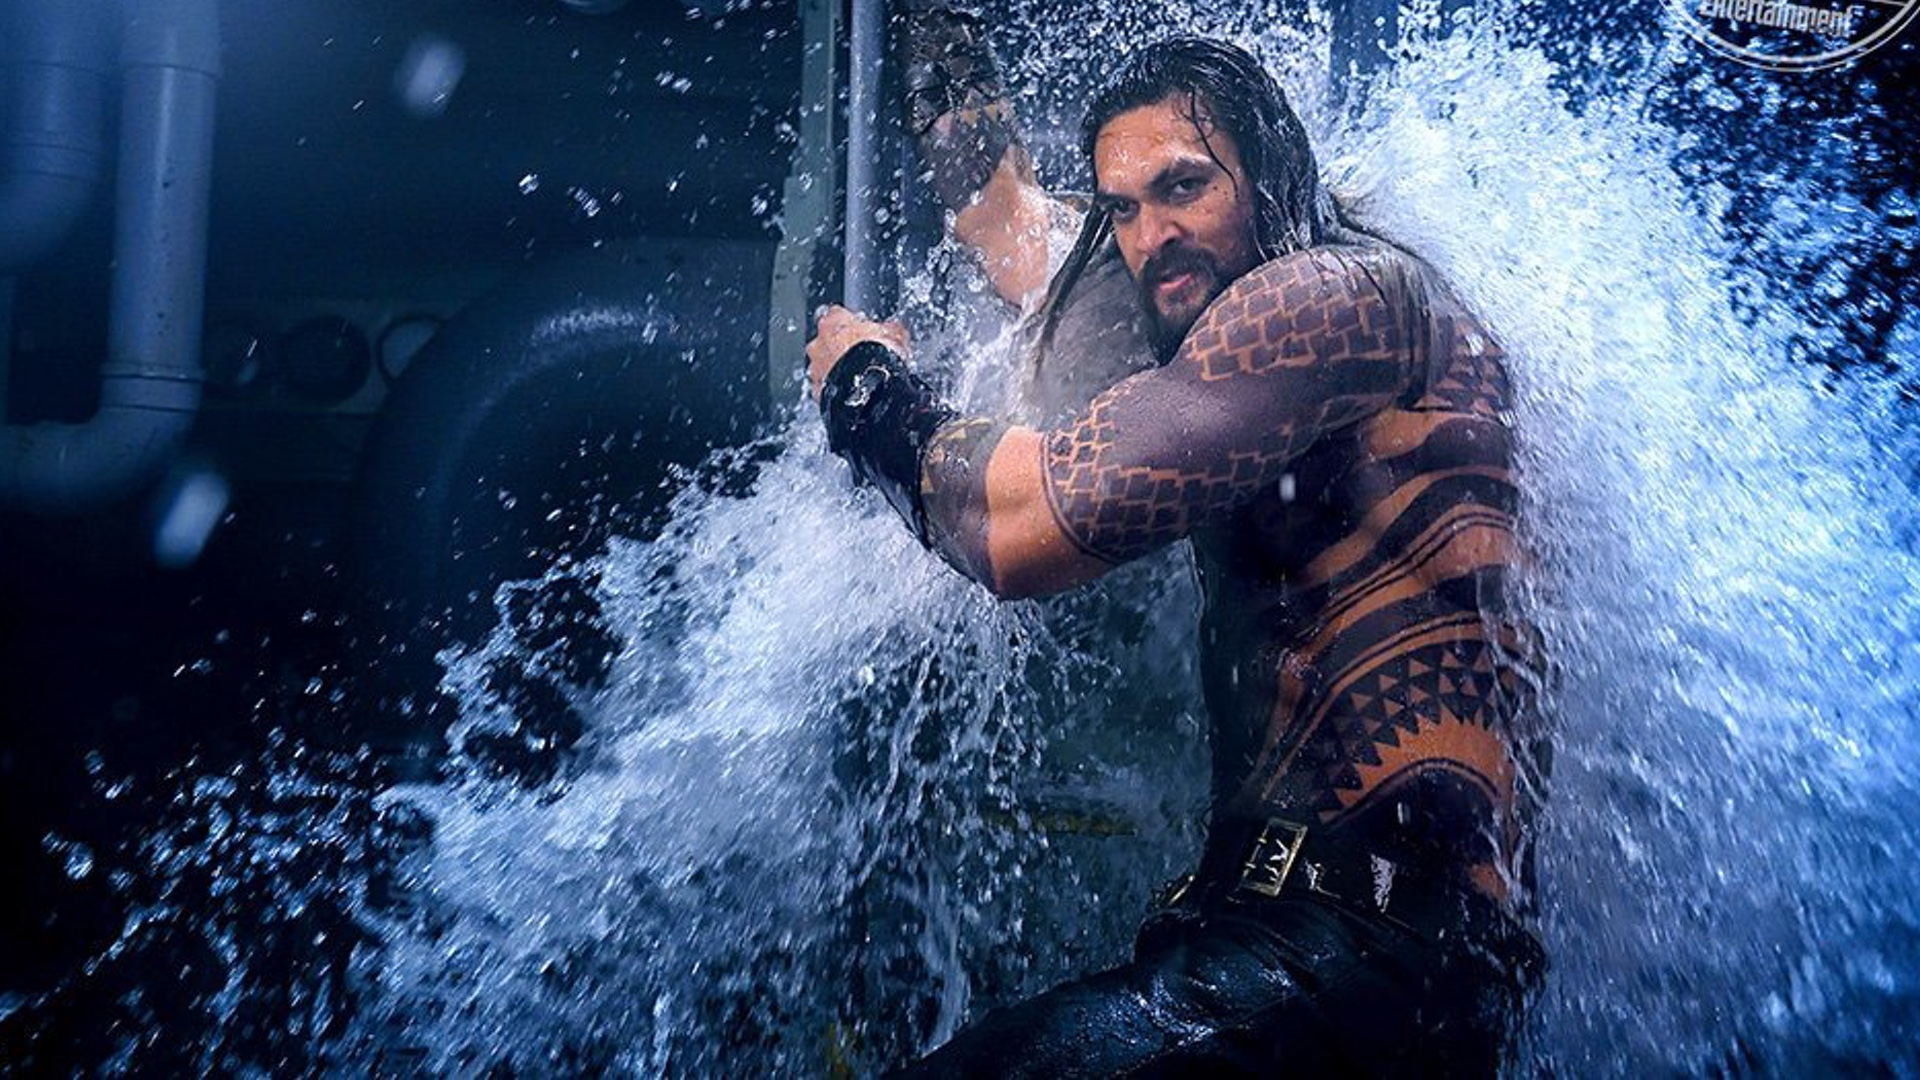 the-first-aquaman-trailer-confirmed-to-debut-at-san-diego-comic-con-social.jpg